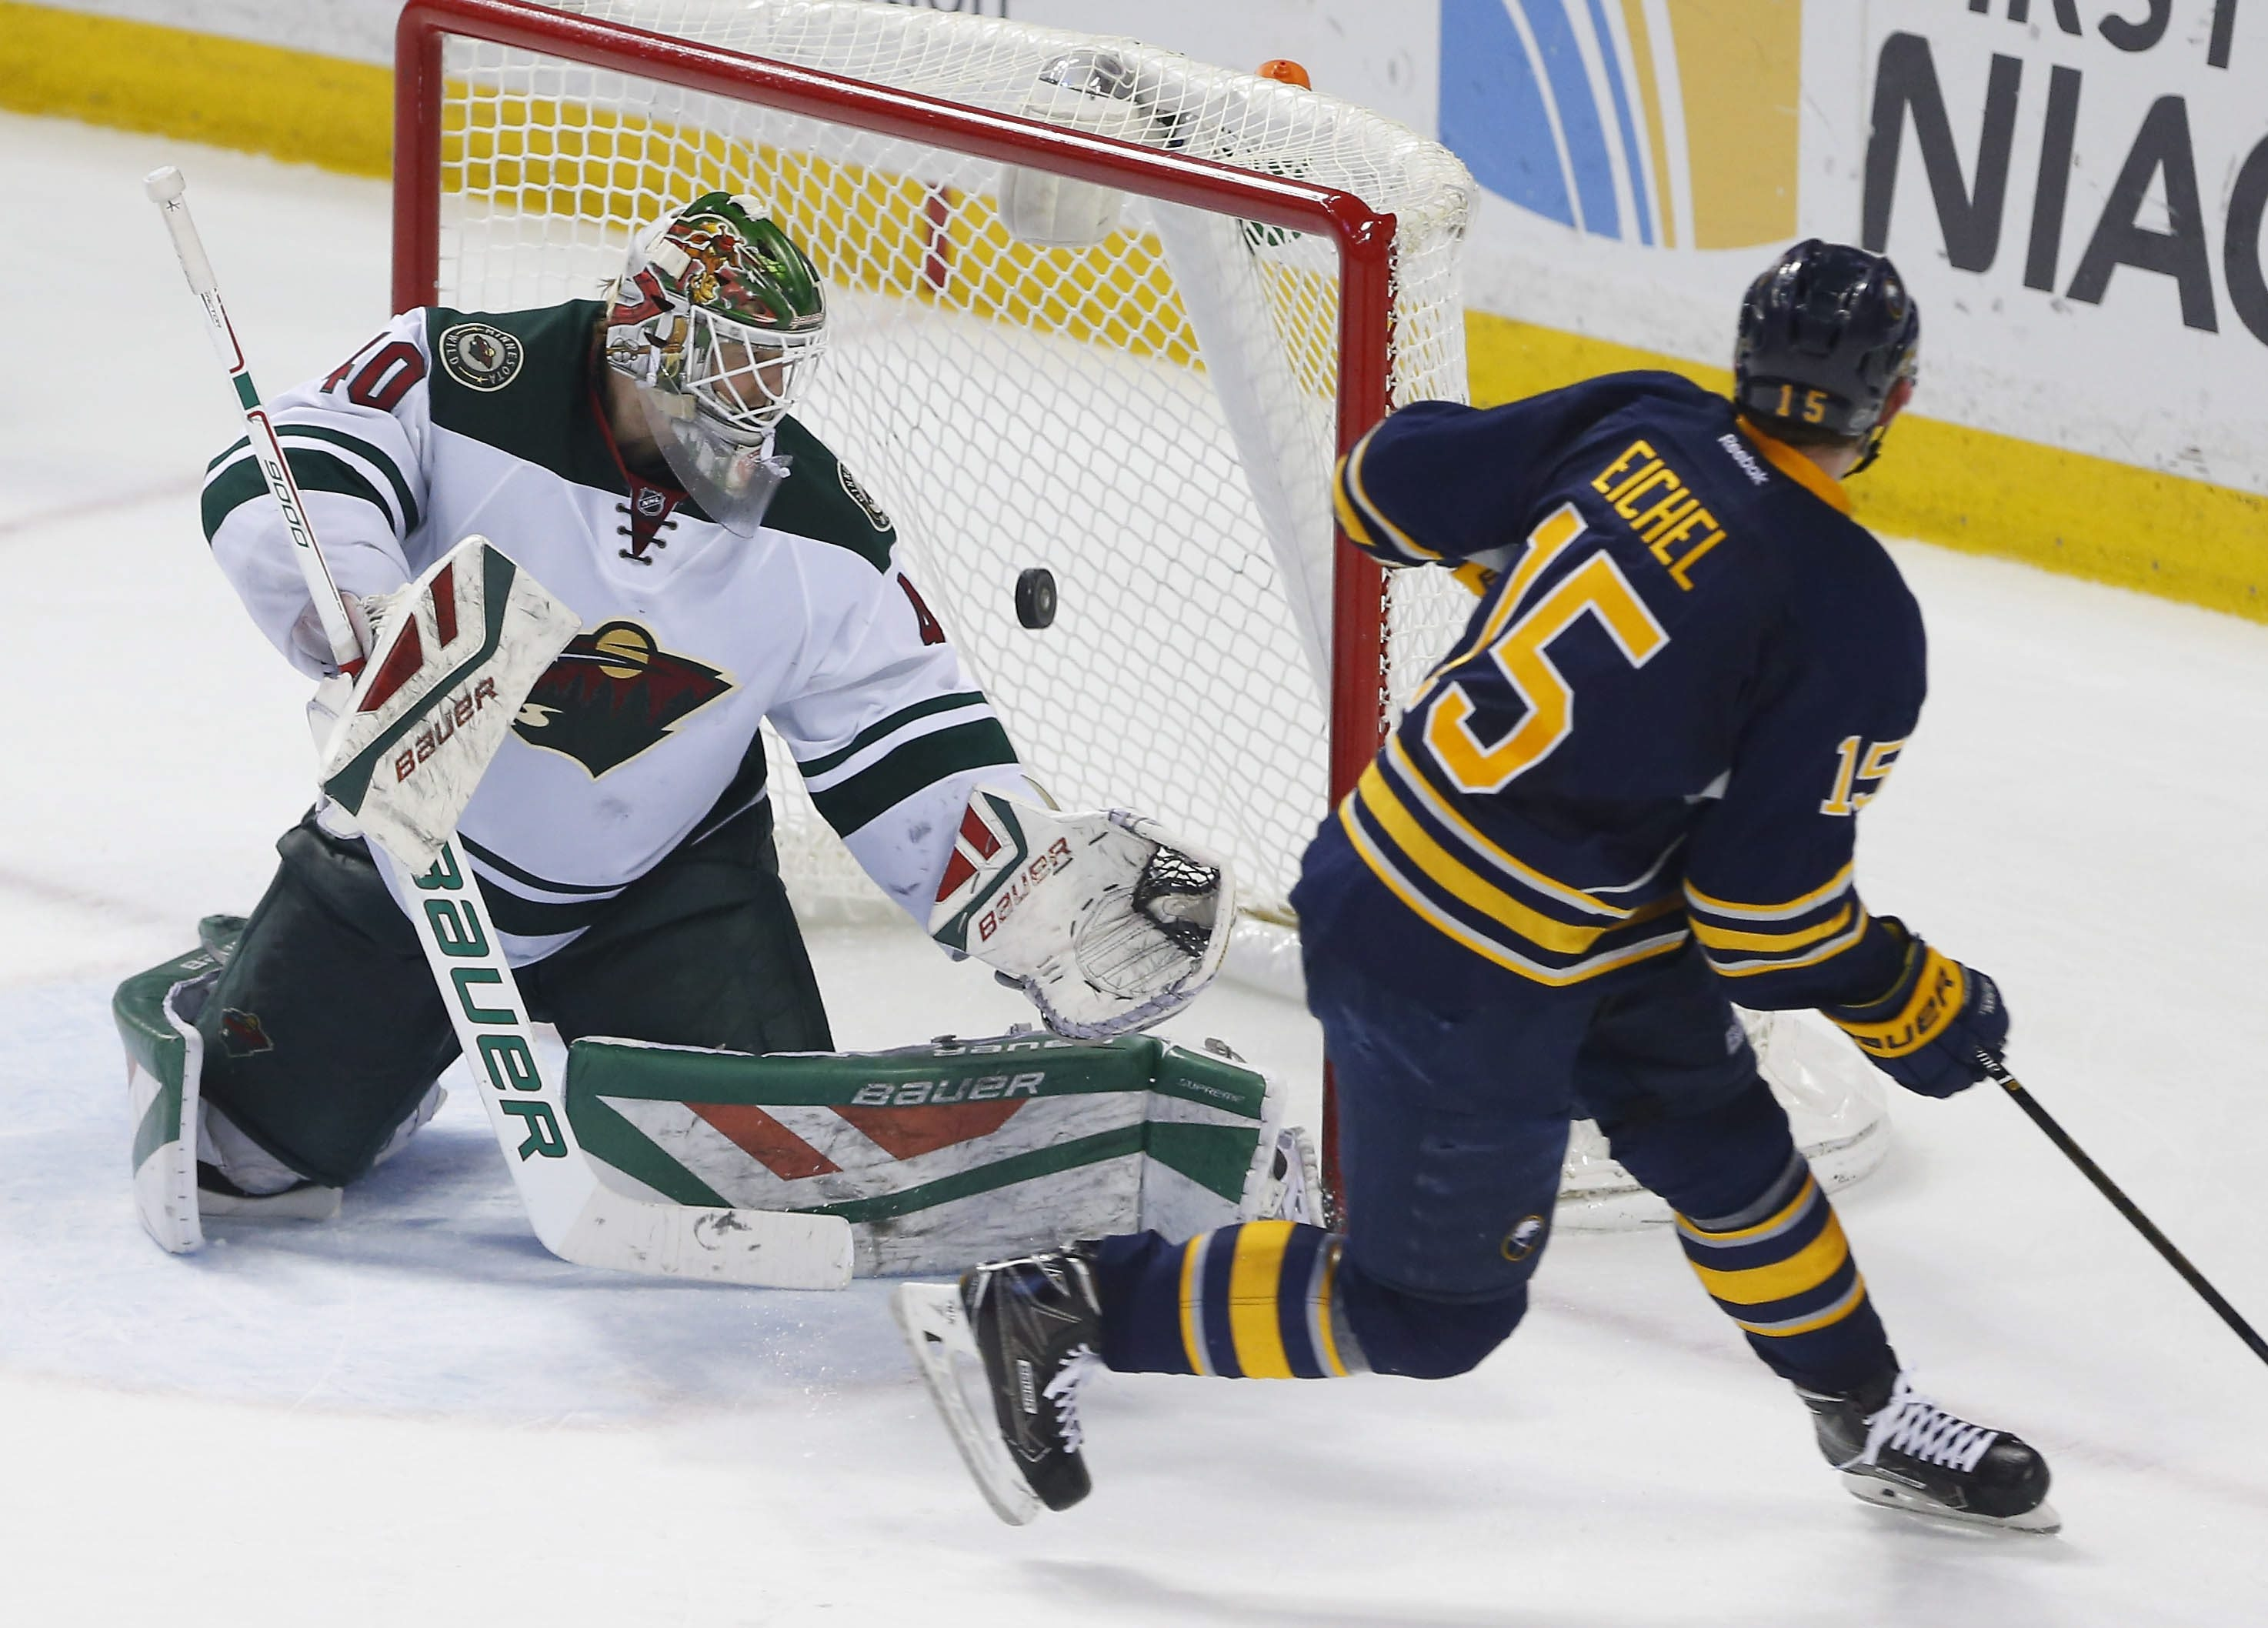 Buffalo Sabres center Jack Eichel puts the puck past Minnesota Wild  goaltender Devan Dubnyk in the shootout period at the First Niagara Center in Buffalo on Saturday.